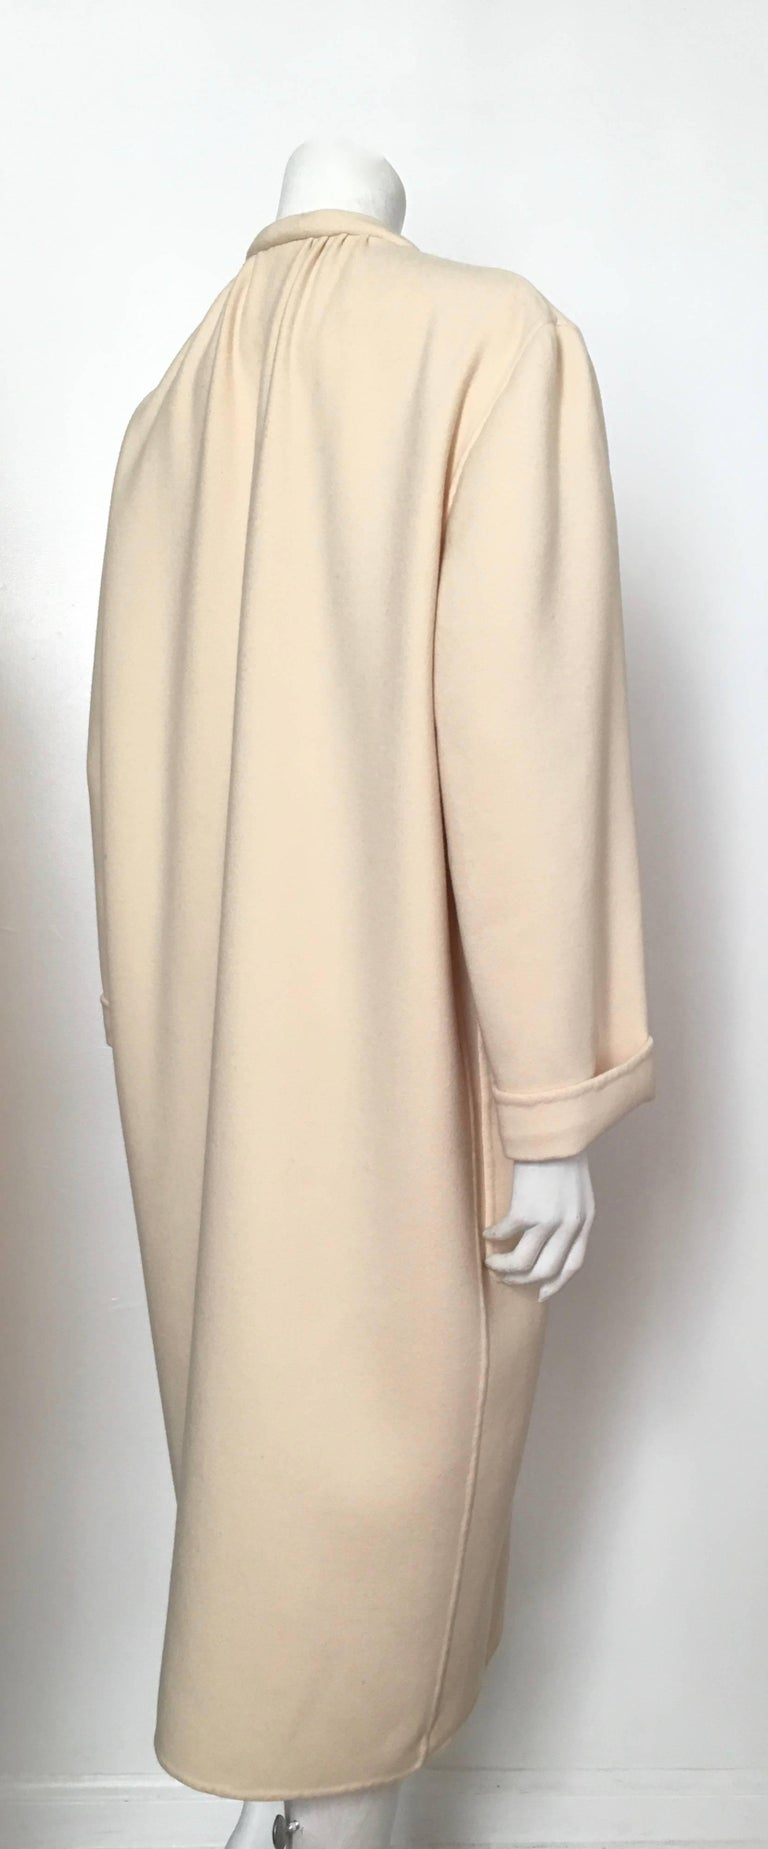 White Salvatore Ferragamo Cream Wool Cocoon Coat with Pockets Size 10 For Sale